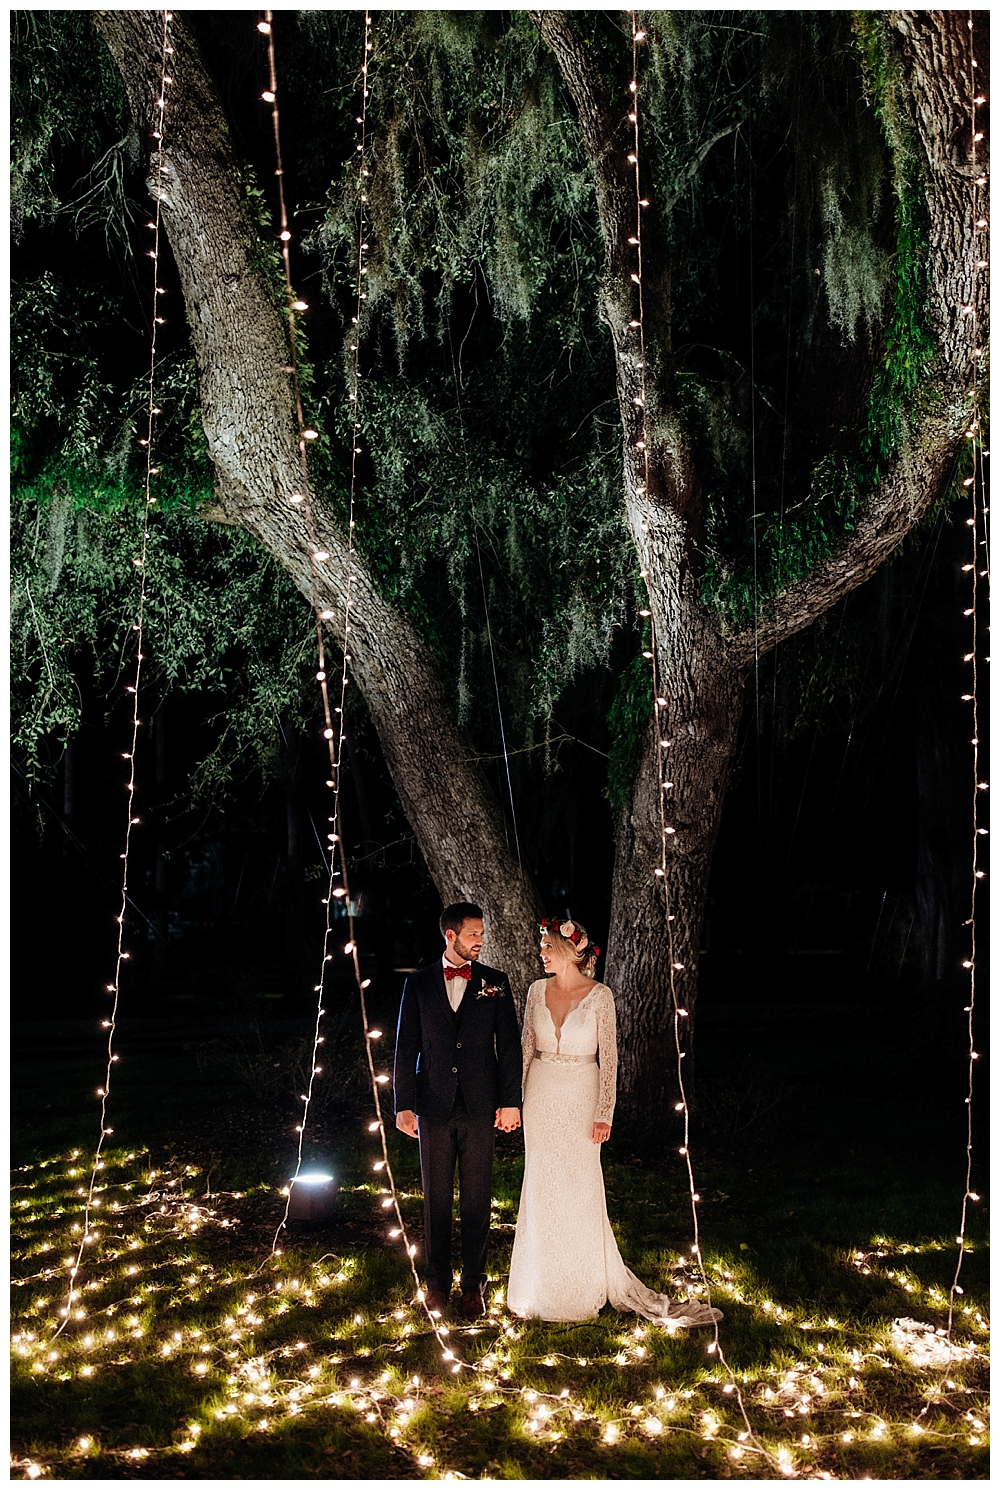 christinakarstphotography__jacksonvilleweddingphotographer_ribaultclub_is-468.jpg